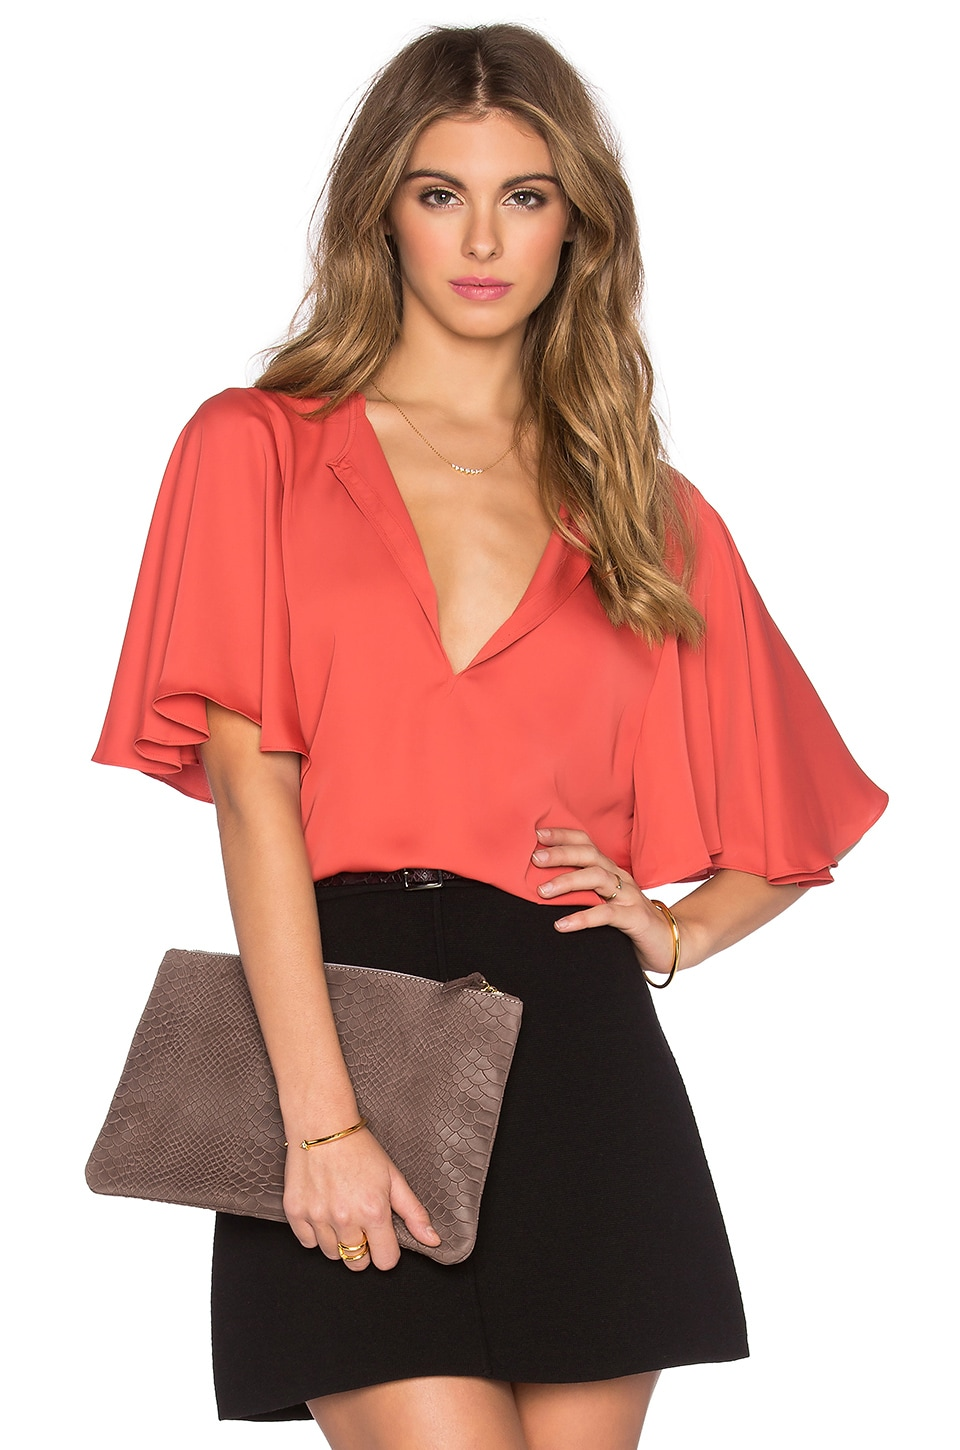 The Billowy Blouse